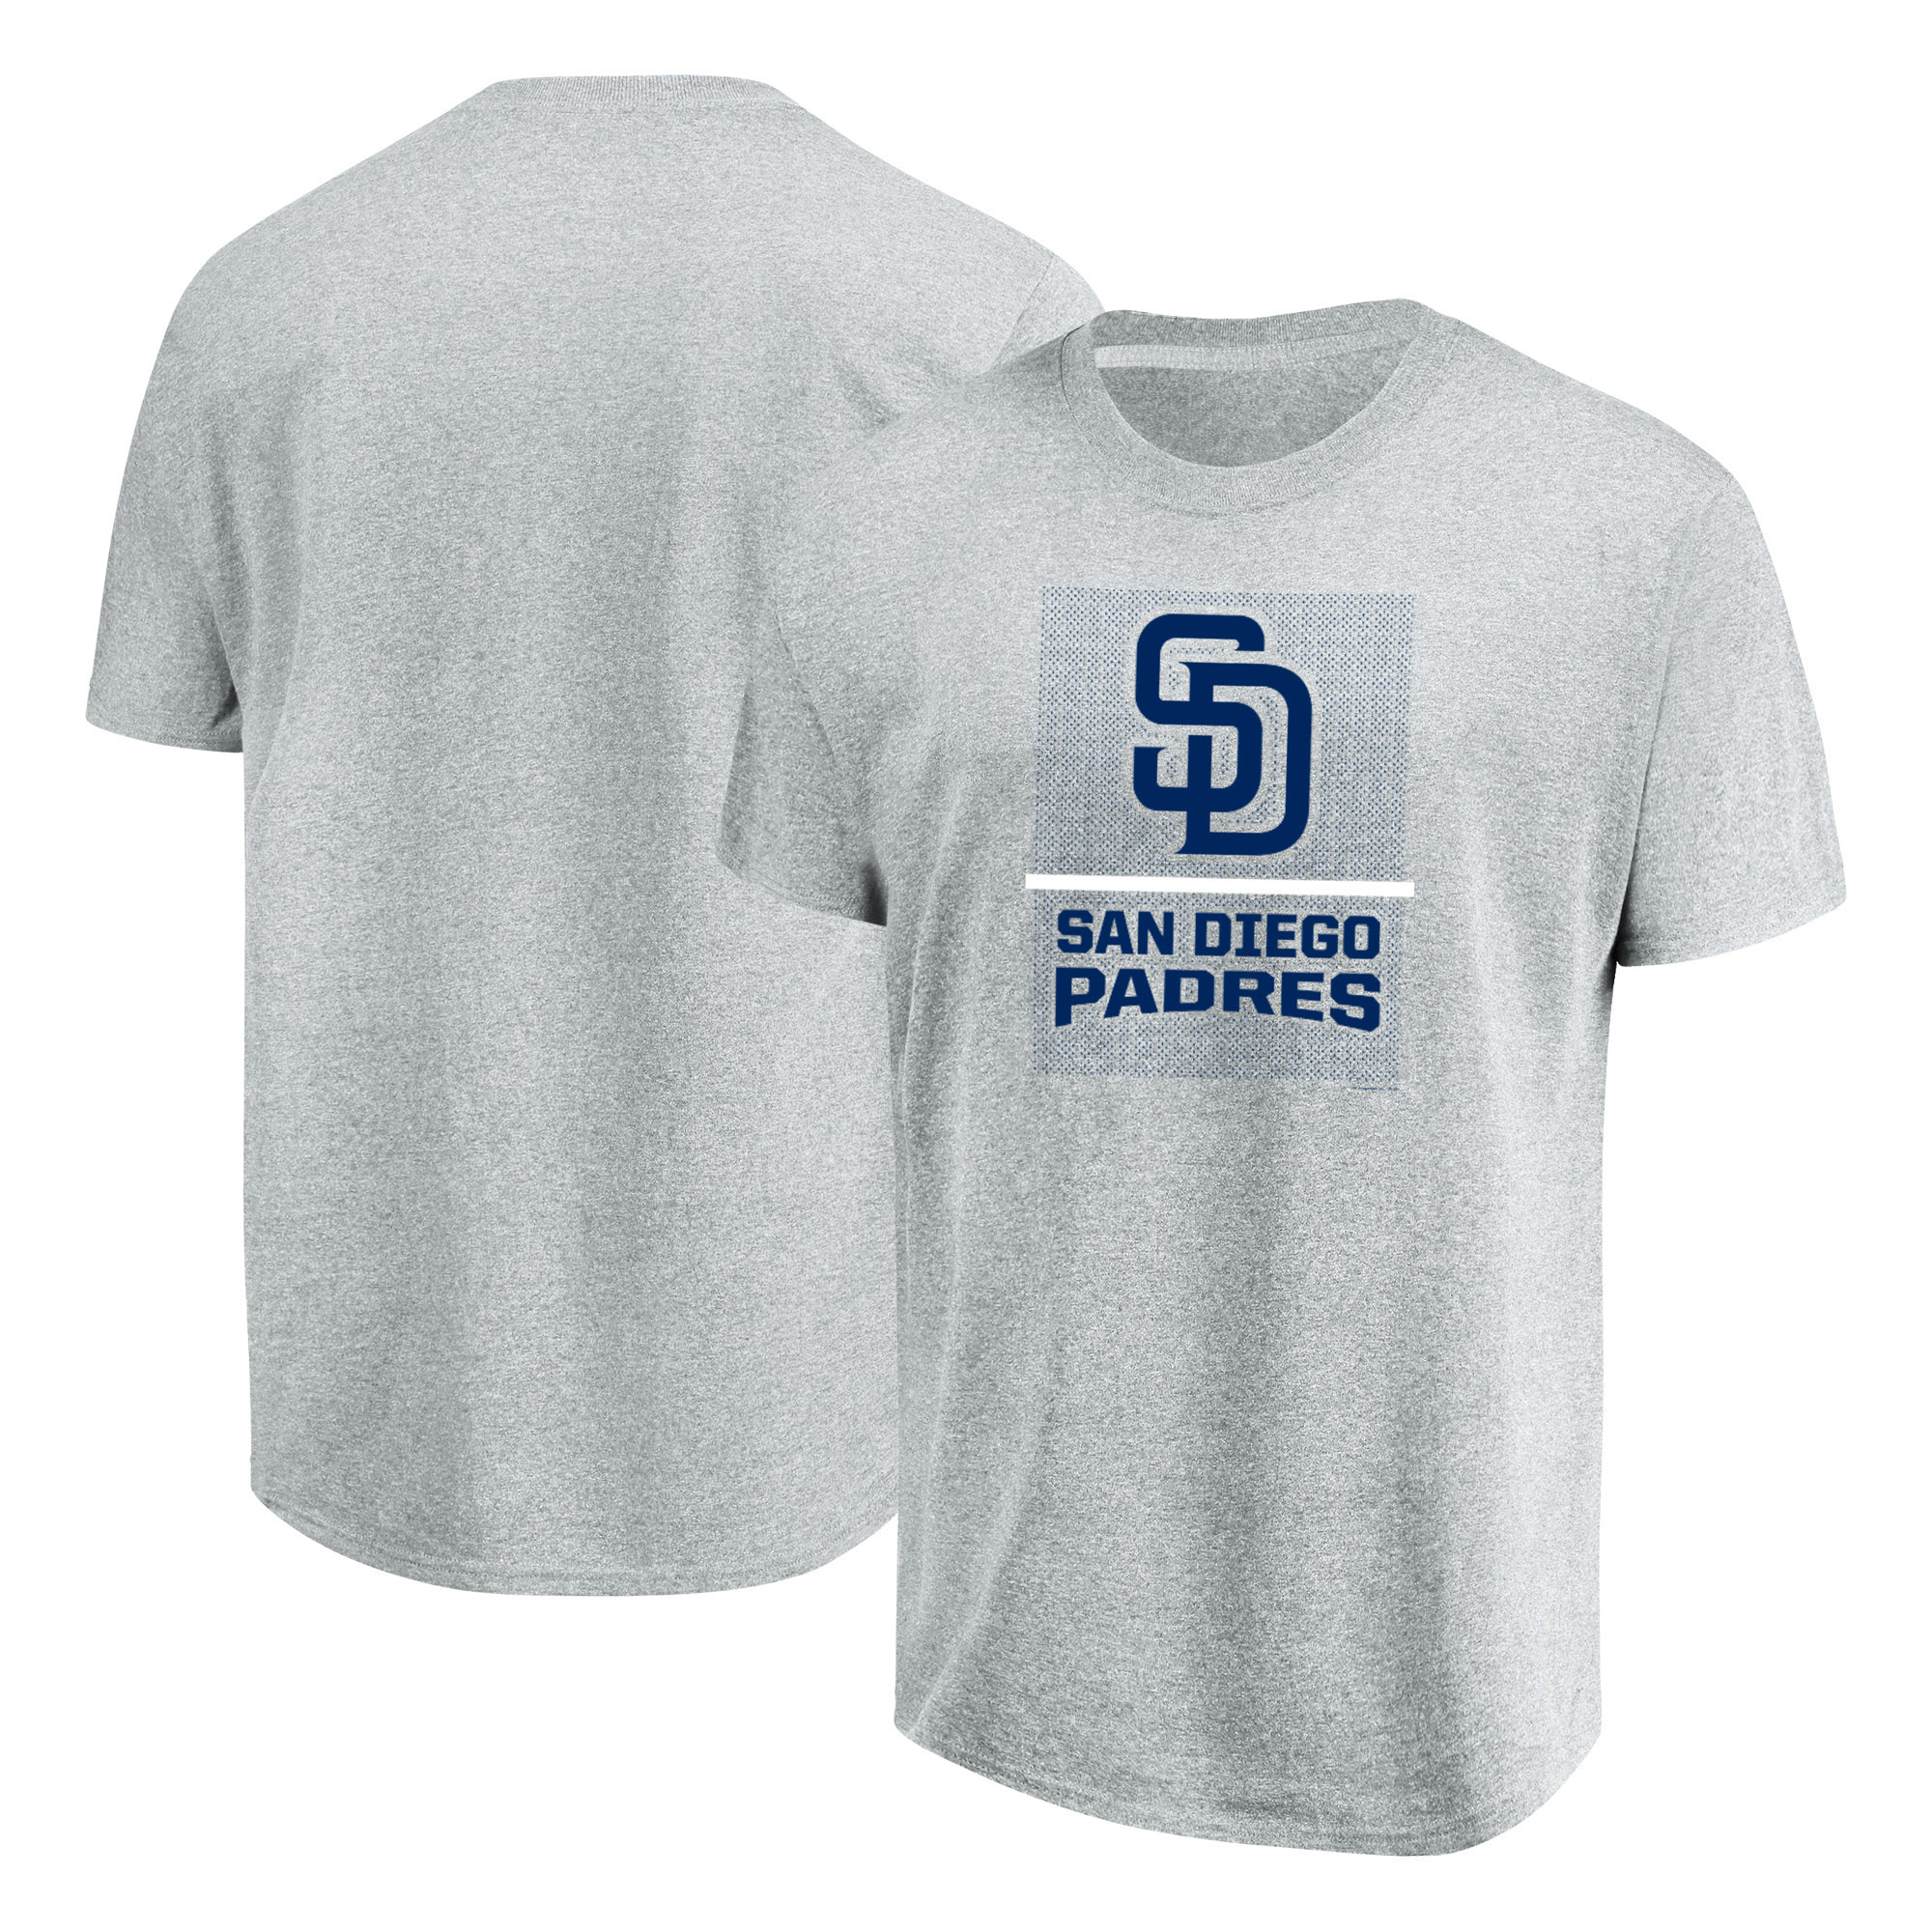 San Diego Padres Majestic Flying High Big & Tall T-Shirt - Heathered Gray